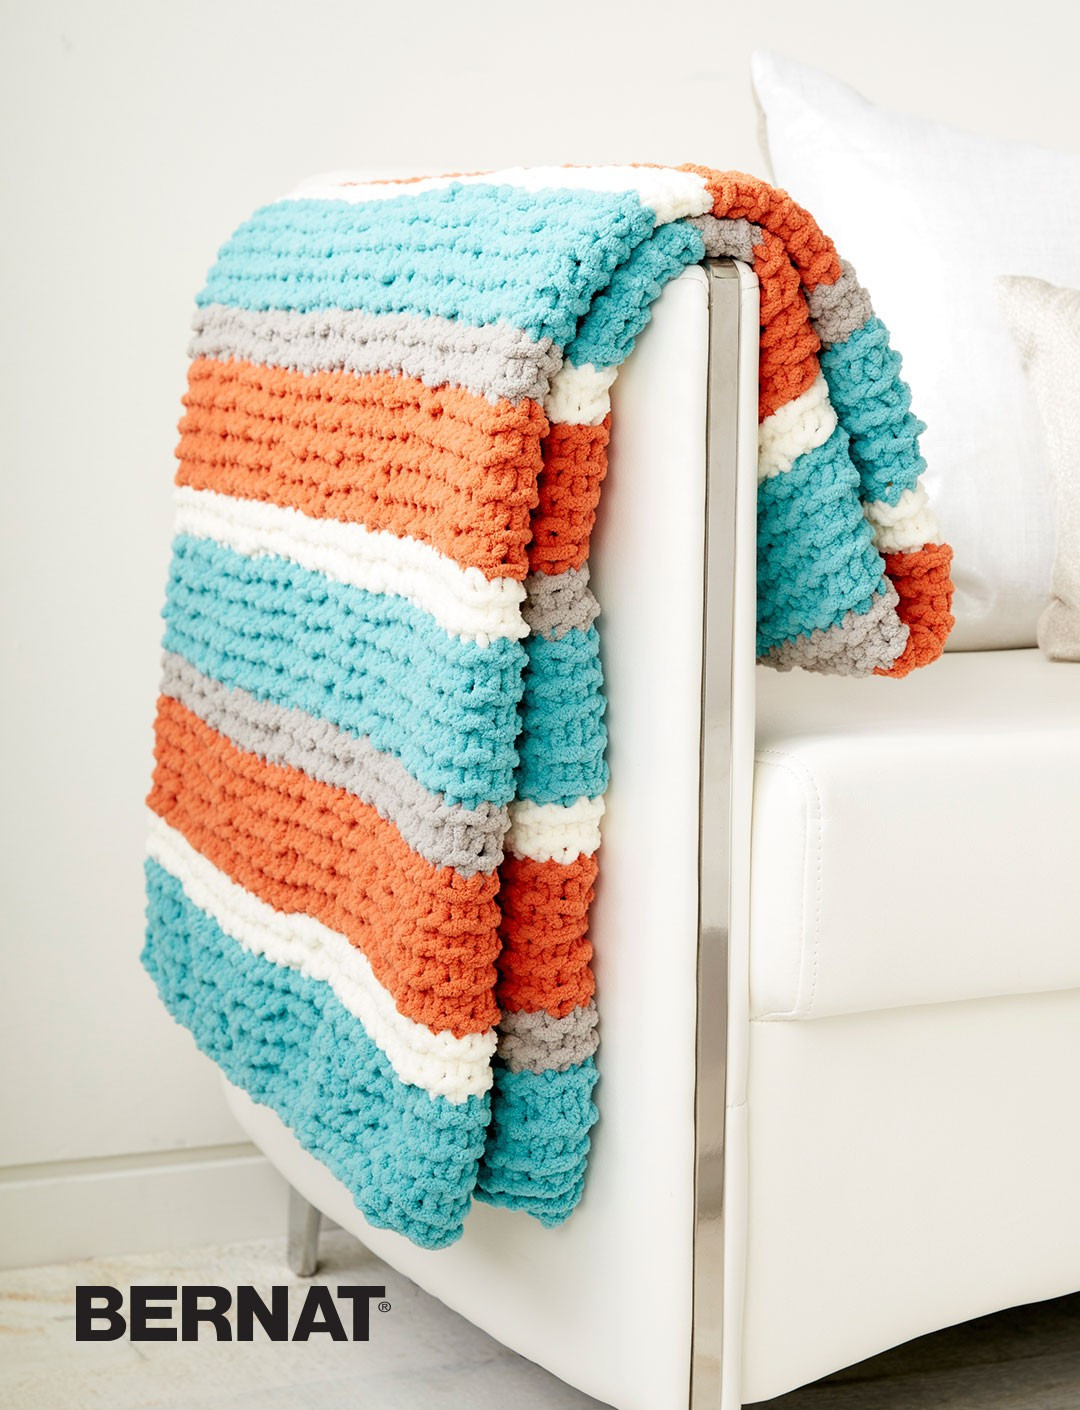 Bernat Crochet Blanket New Bernat Get Fresh Throw Knit Pattern Of Incredible 49 Images Bernat Crochet Blanket